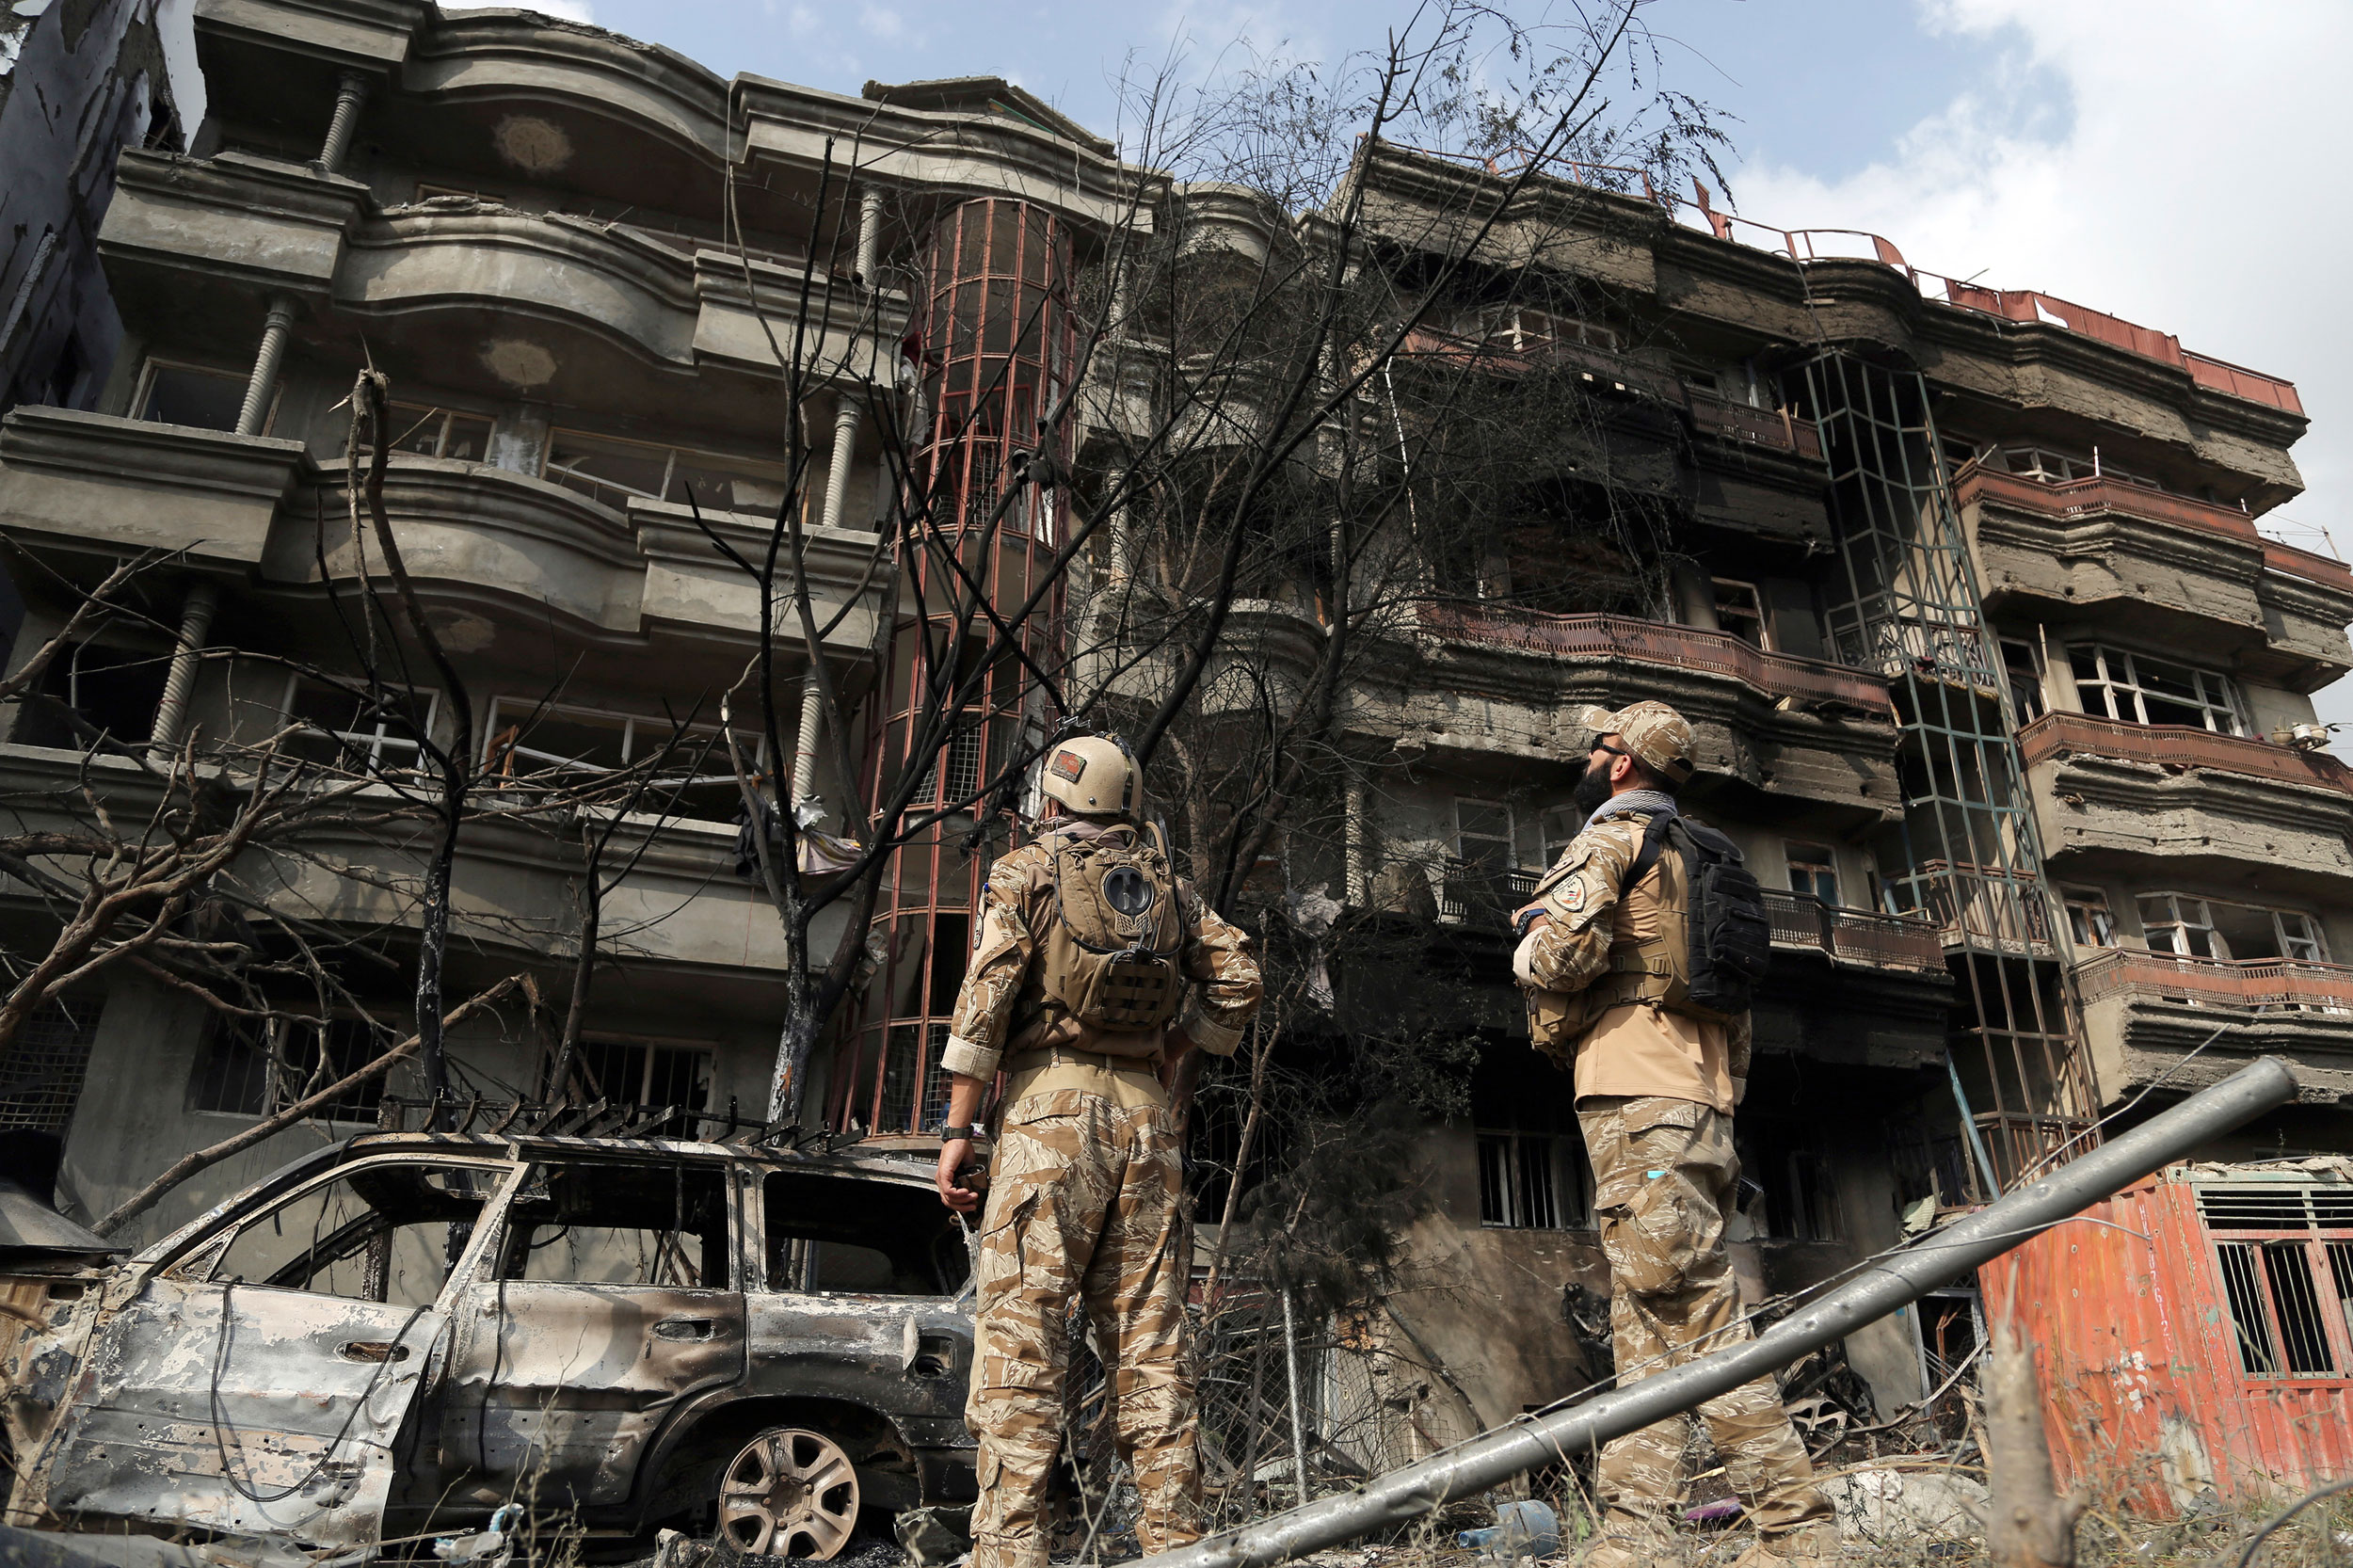 Afghan government, foreign forces 'killed most civilians'